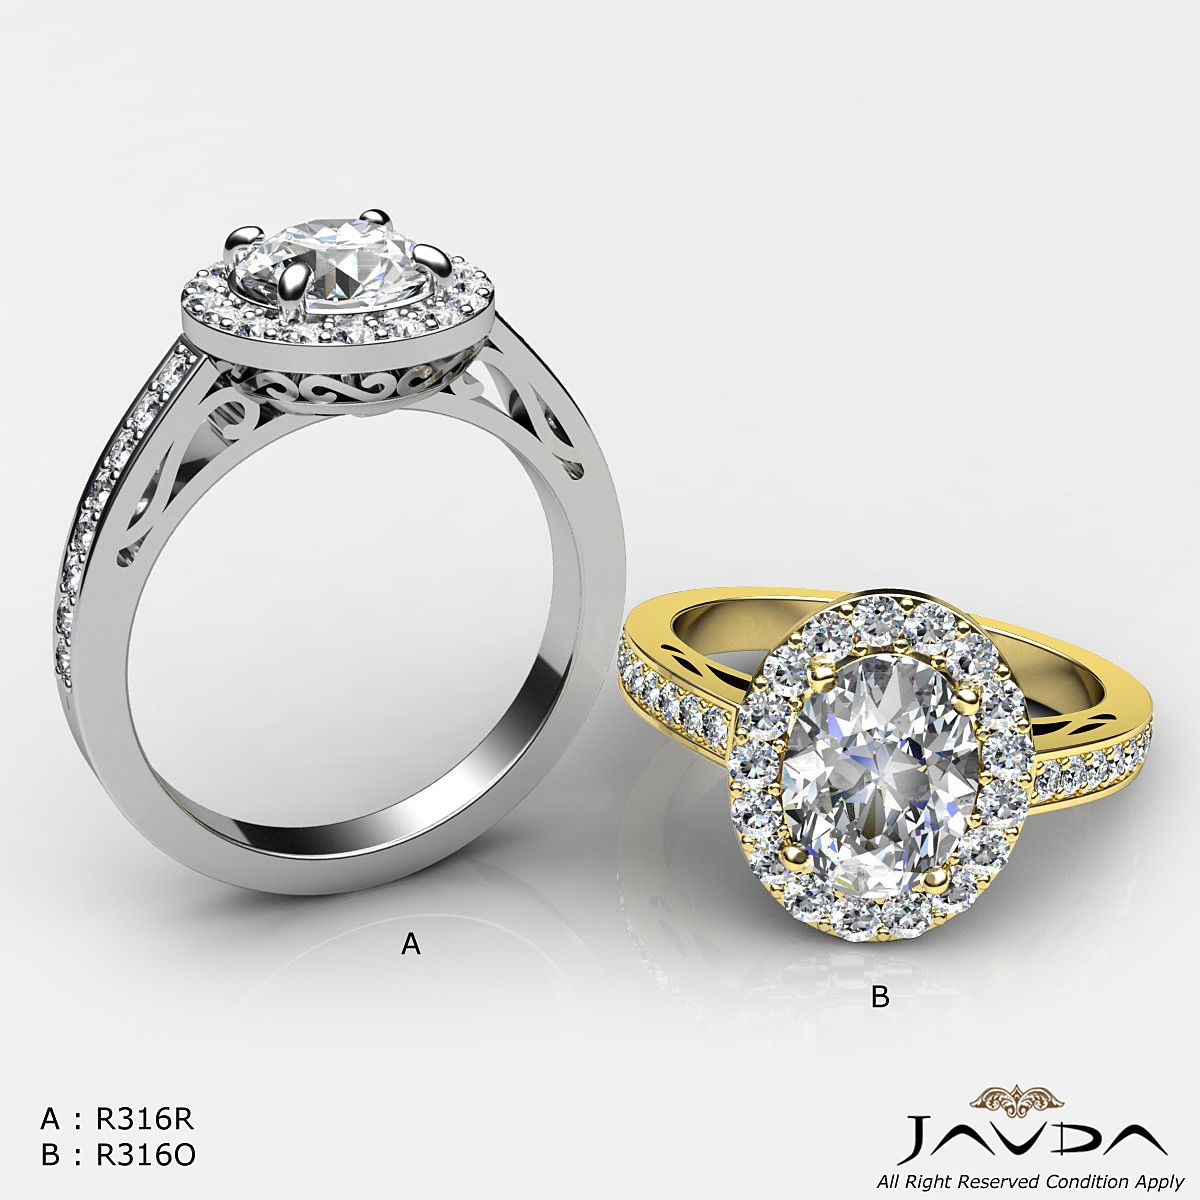 A :2.8ct Round Diamond Engagement Vintage Filigree Ring GIA F VS2 14k White Gold. B :2.3 ct Natural Oval Diamond Engagement Ring GIA H VS2 Halo Pave 14K Yellow Gold